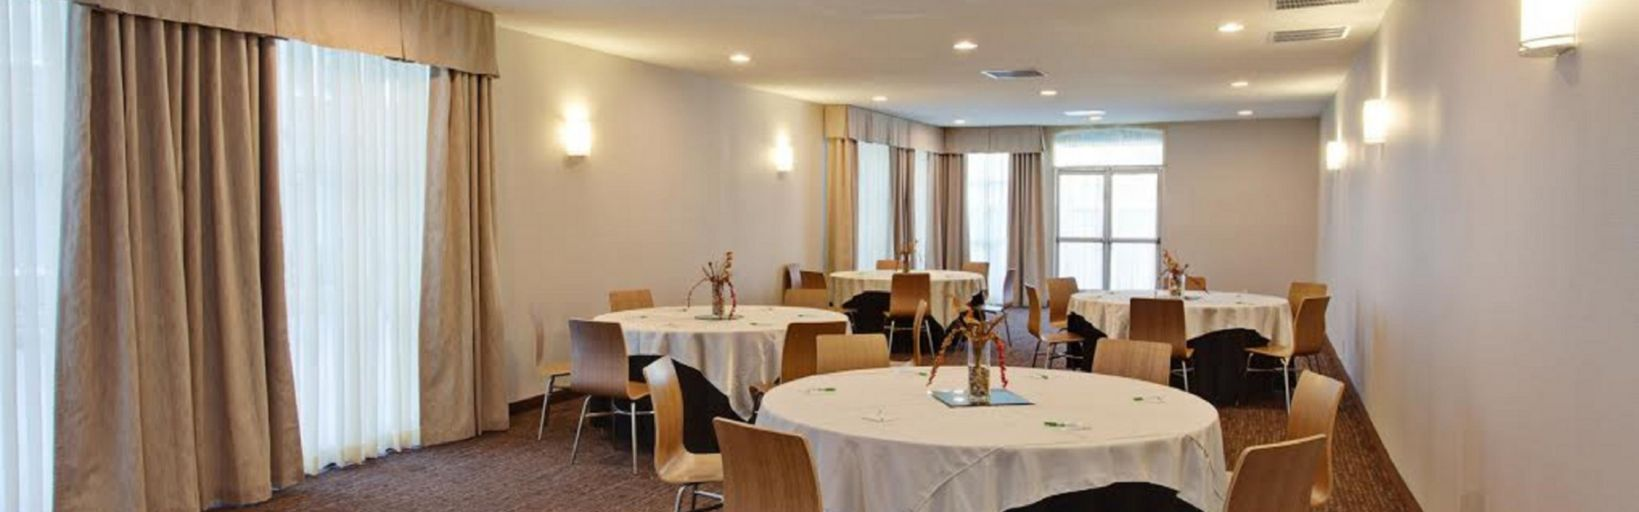 Holiday Inn West Covina Hotels Events Facilities